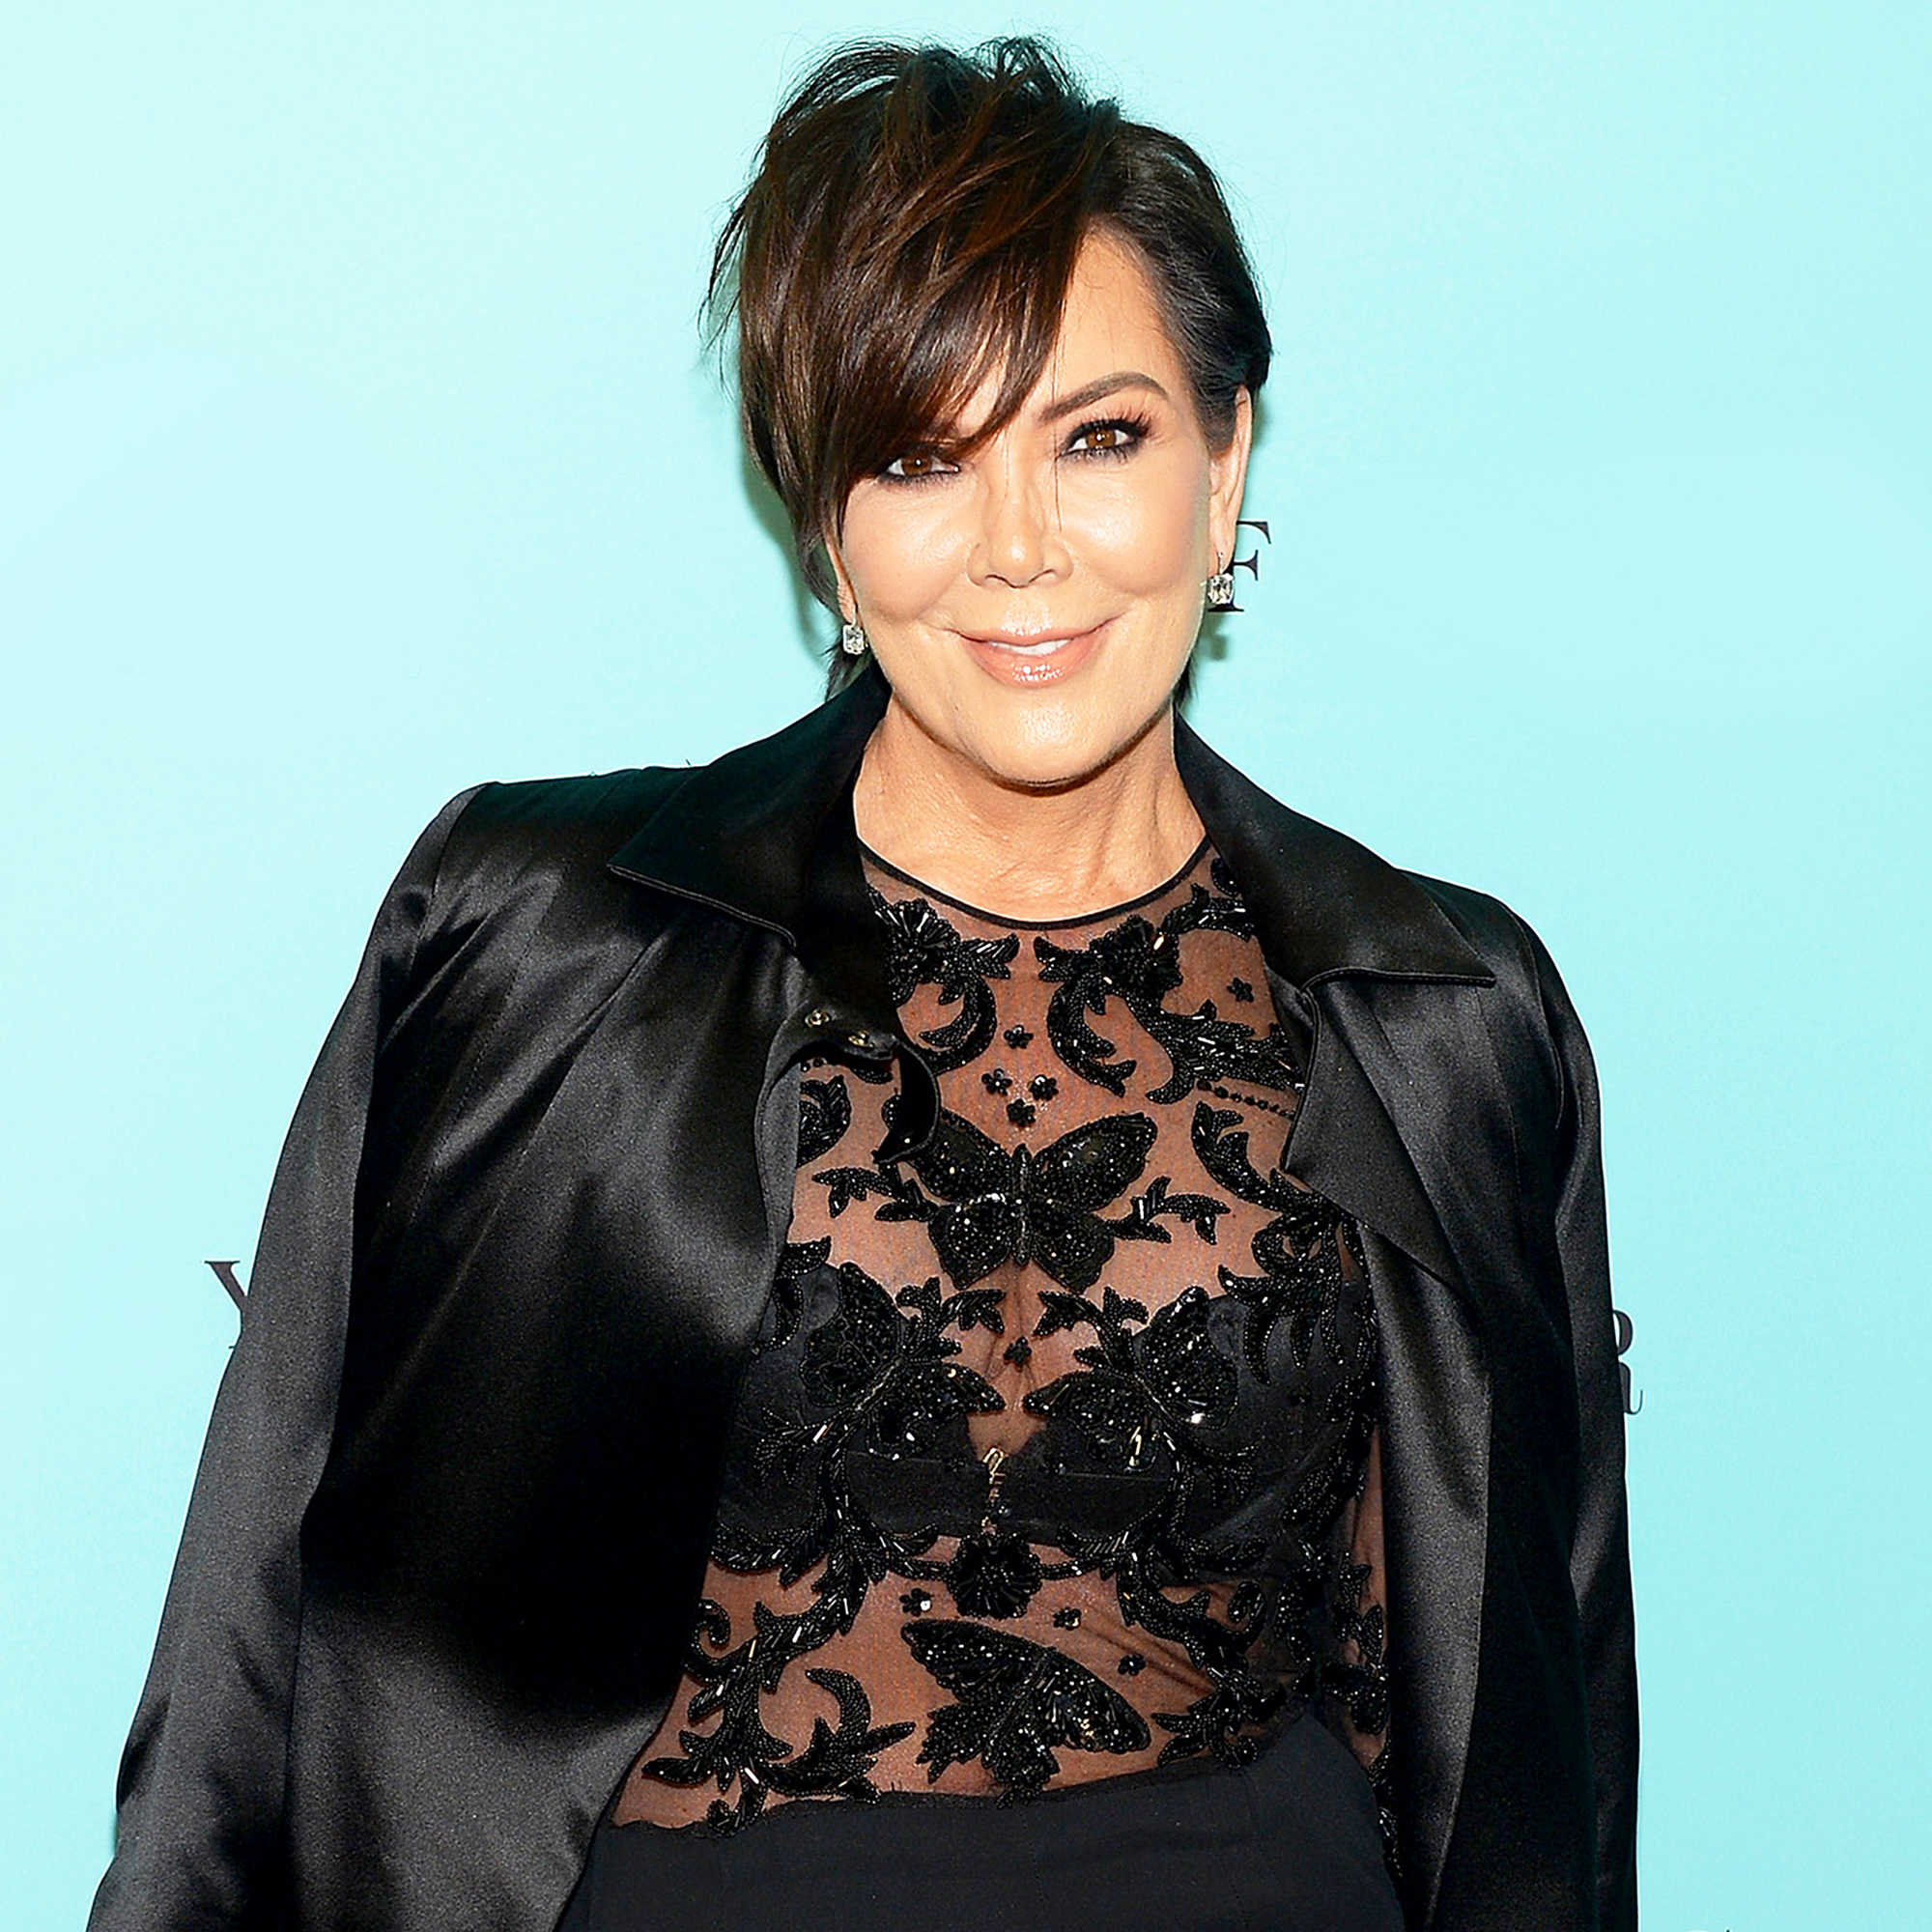 Kris Jenner attends Harper's BAZAAR 150th Anniversary presented with Tiffany & Co at The Rainbow Room in 2017.